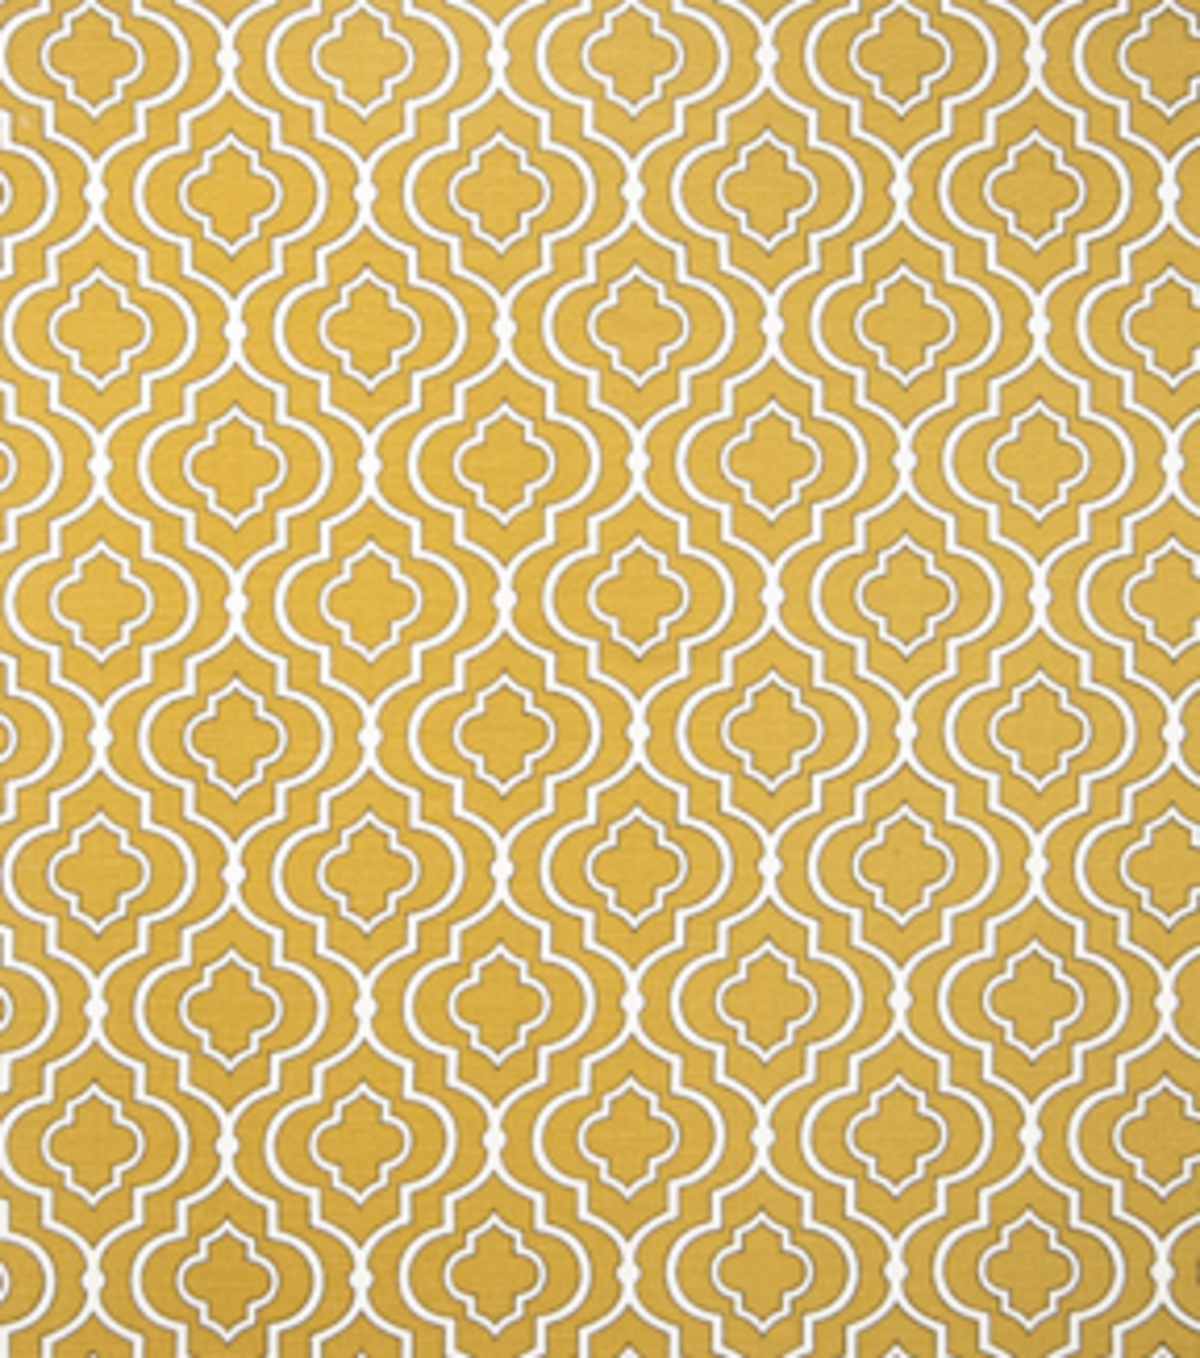 "Home Decor 8""x8"" Fabric Swatch-Upholstery Fabric SMC Designs Depaul Maize"